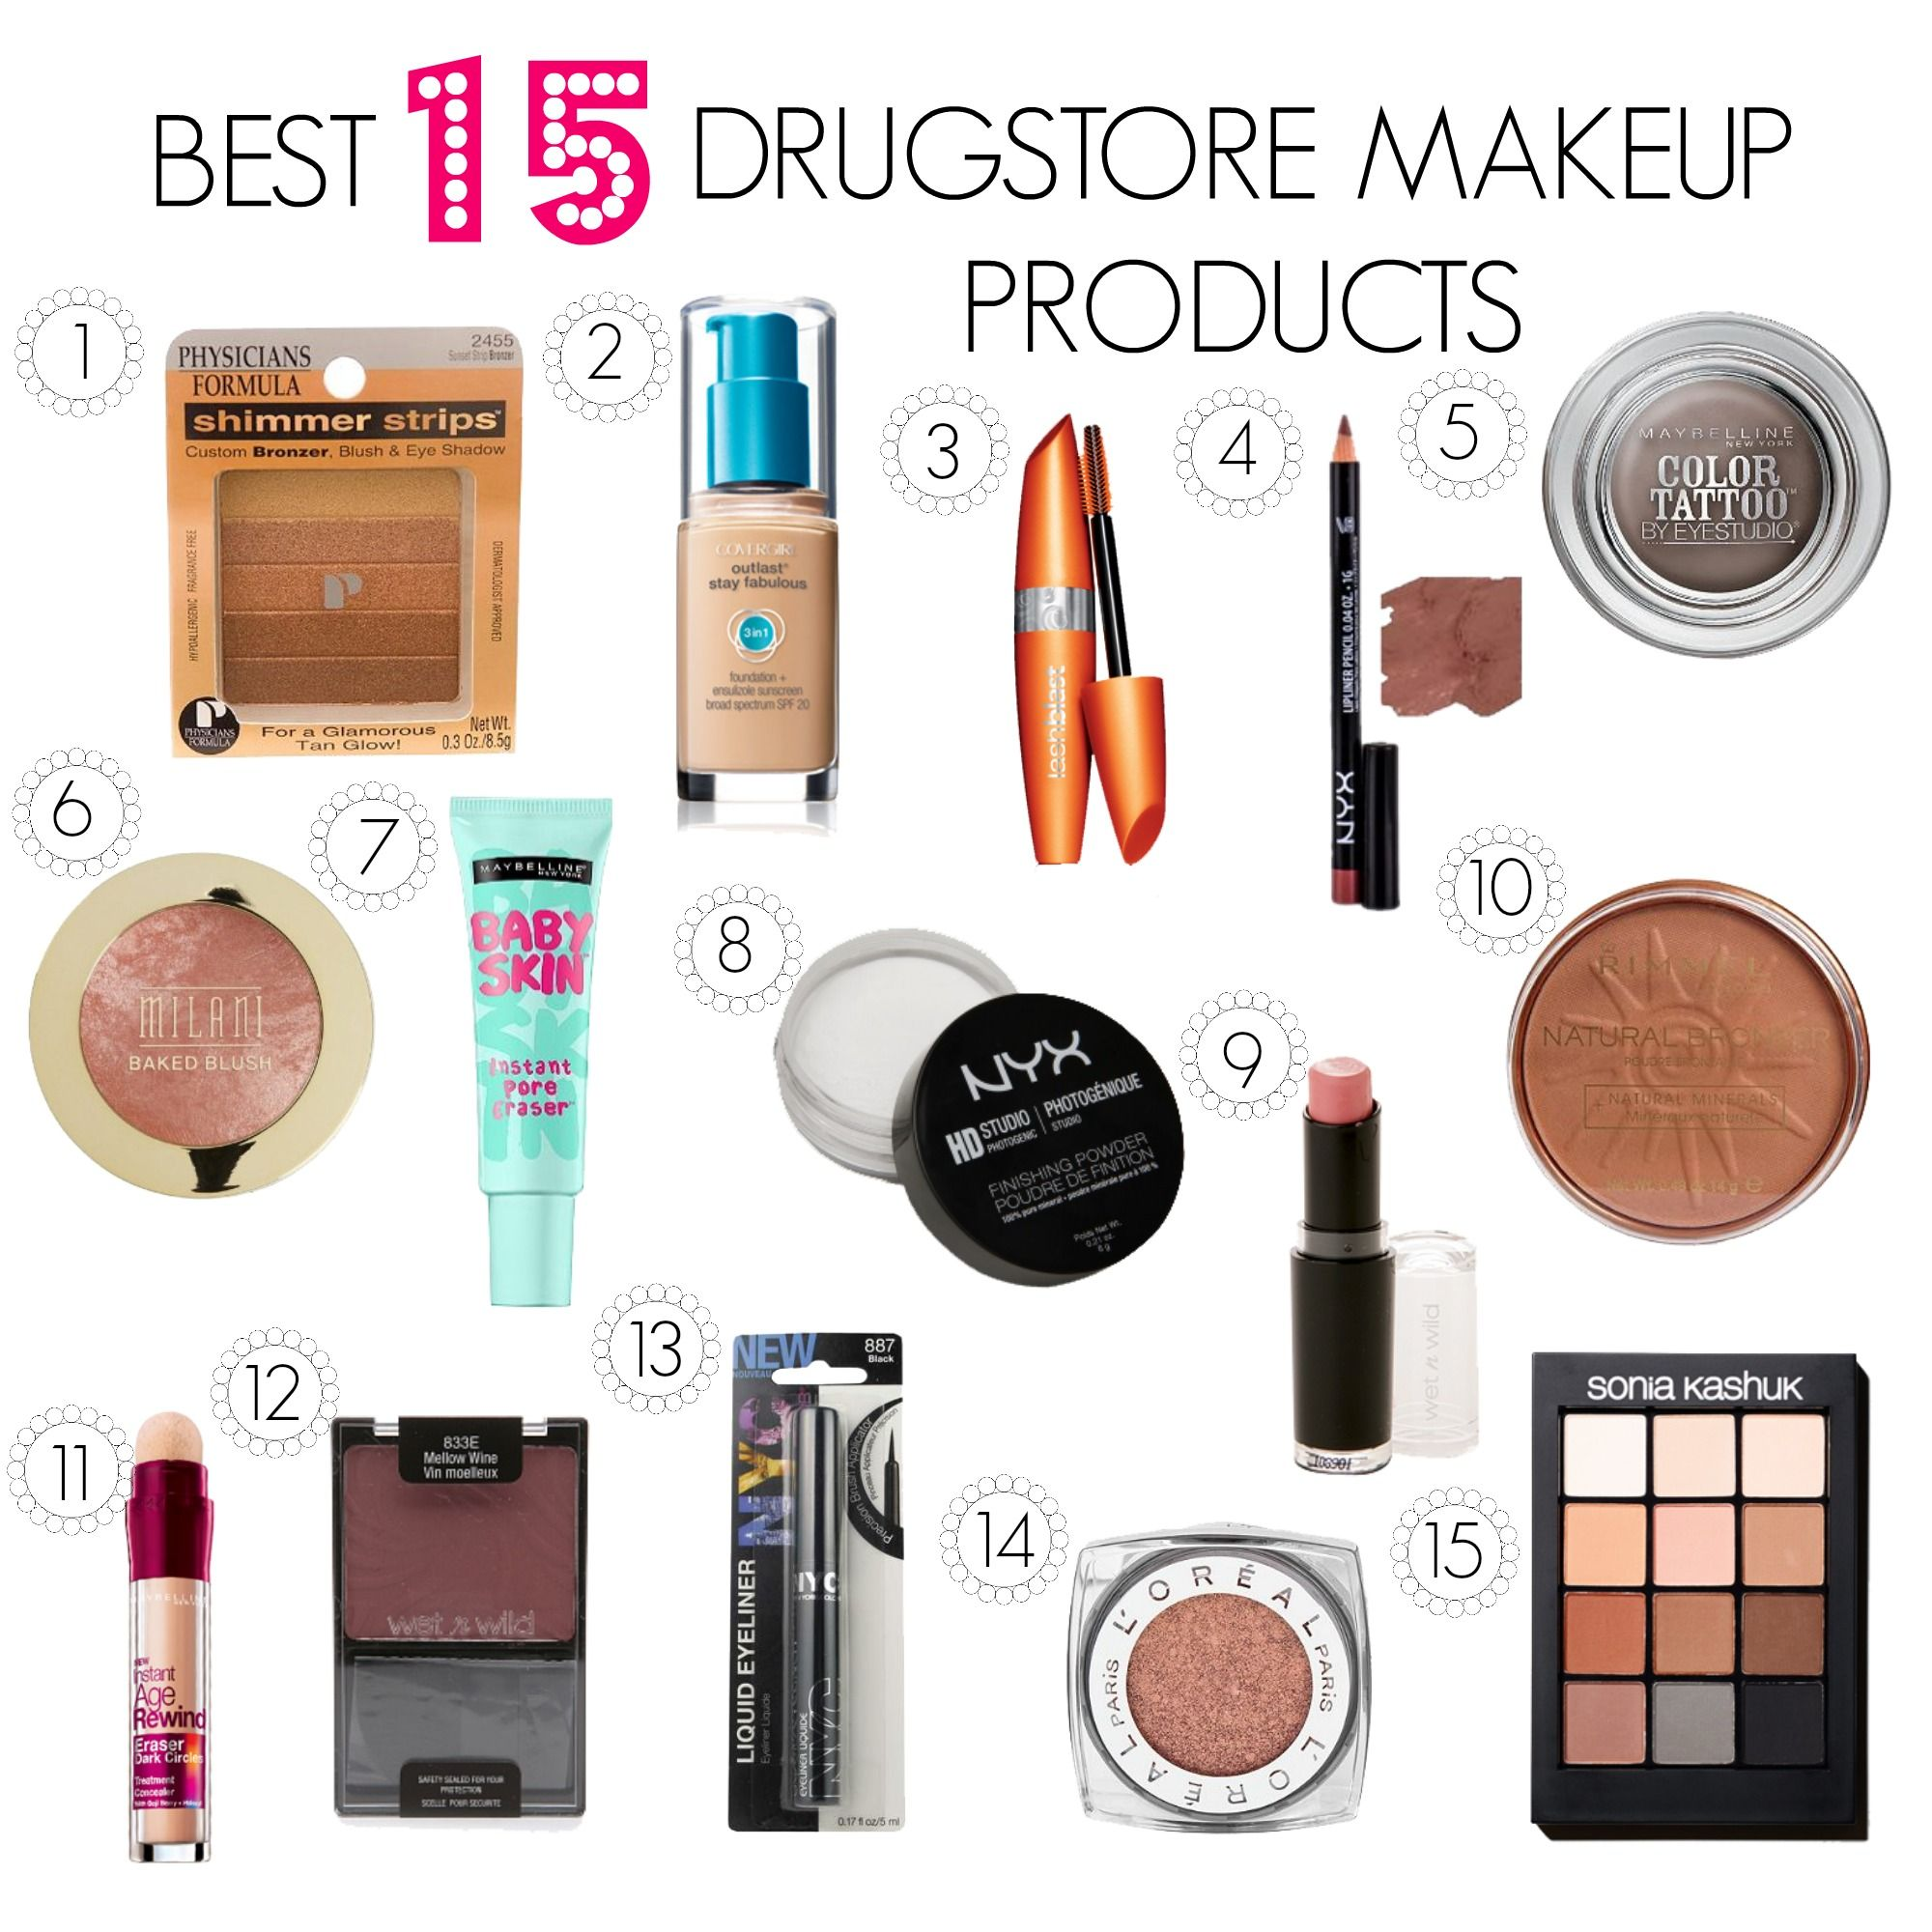 BEST DRUGSTORE PRODUCTS OF 2016 Makeup Tutorials